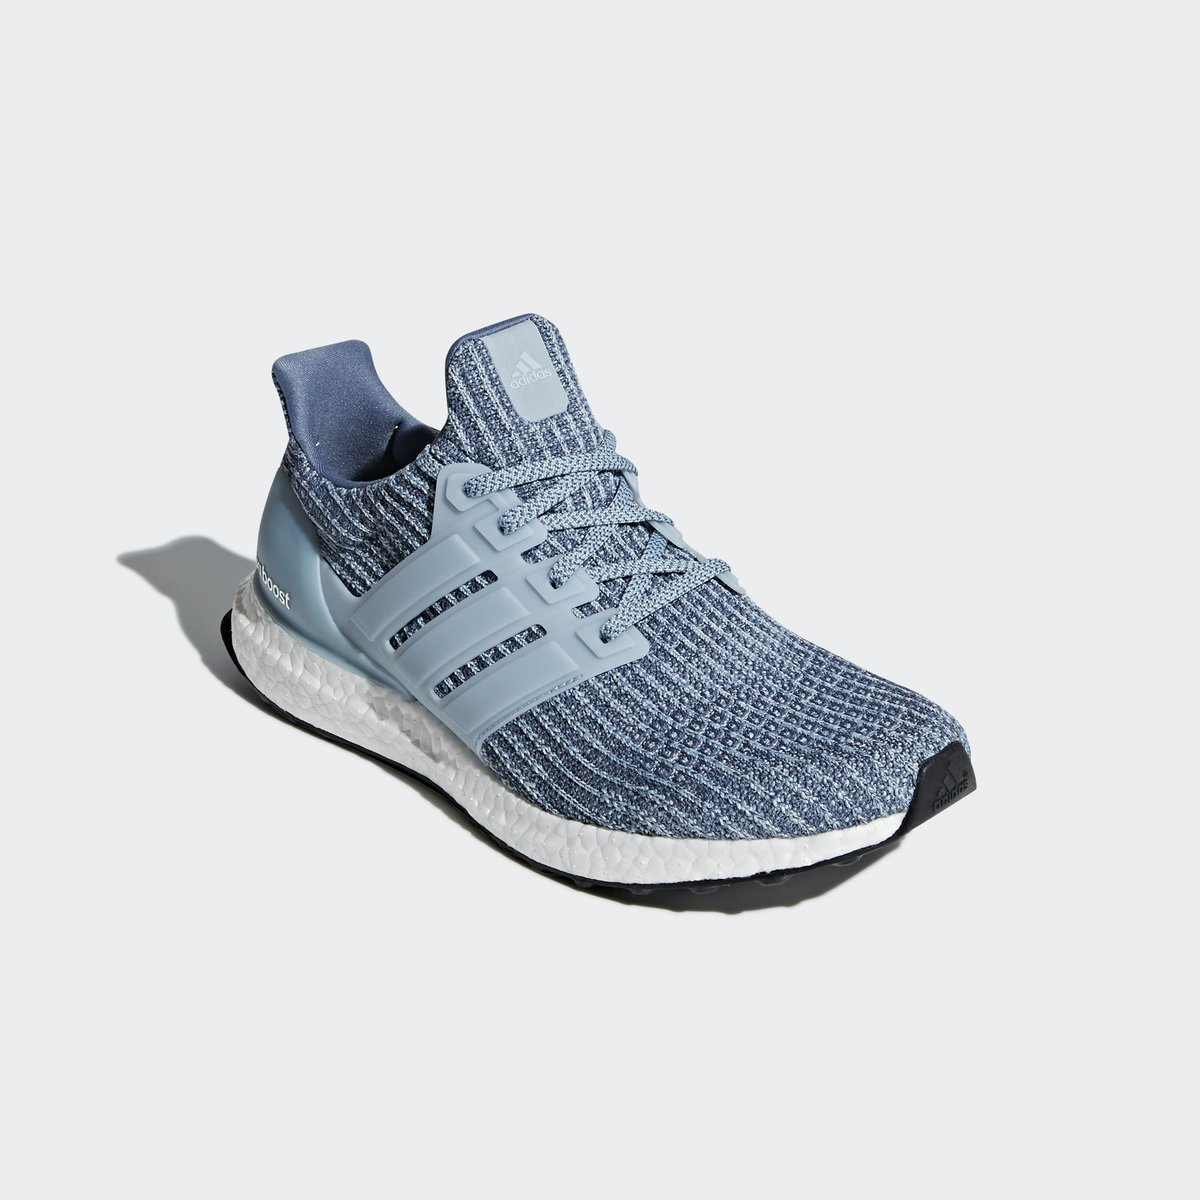 f582791957398 Released today on  sneakersnstuff. adidas Ultra Boost 4.0 Ash Grey. Use  code SNEAKERS for 10% off. —  http   bit.ly 2E1ThOc  pic.twitter.com G4LKtOKdFf